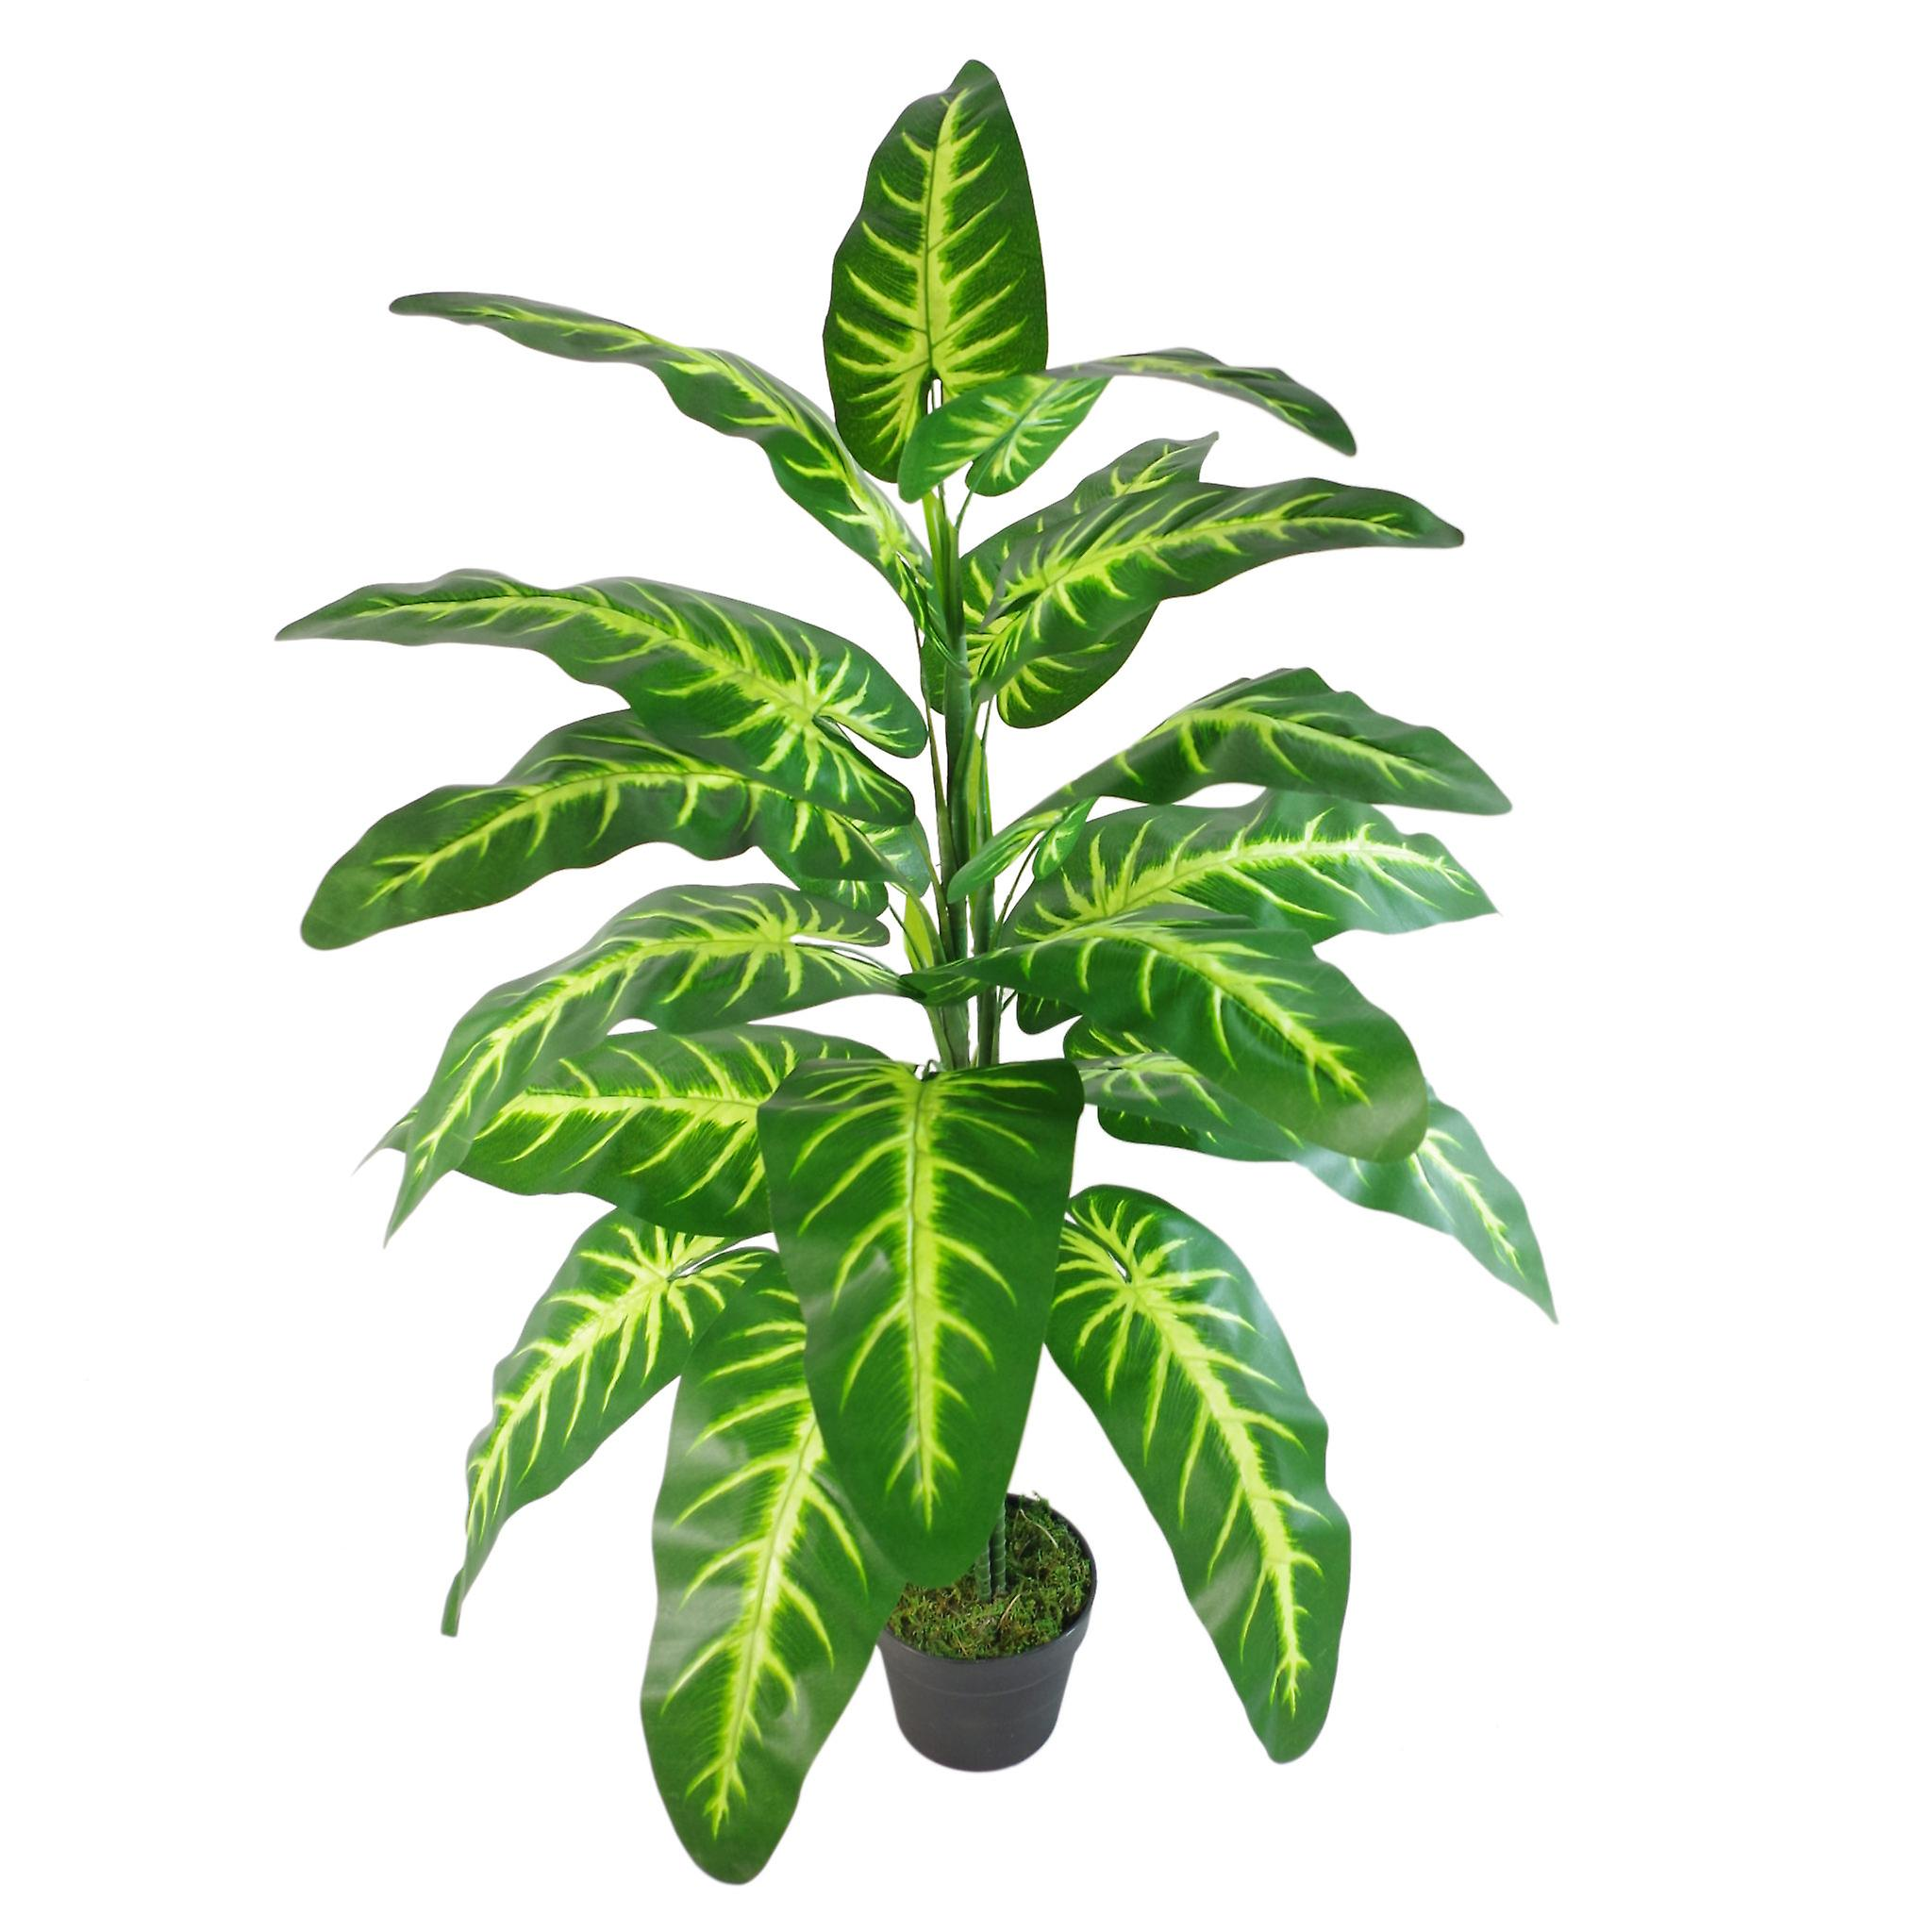 120cm Artificial Large Leaved Evergreen Tall Variegated Plant